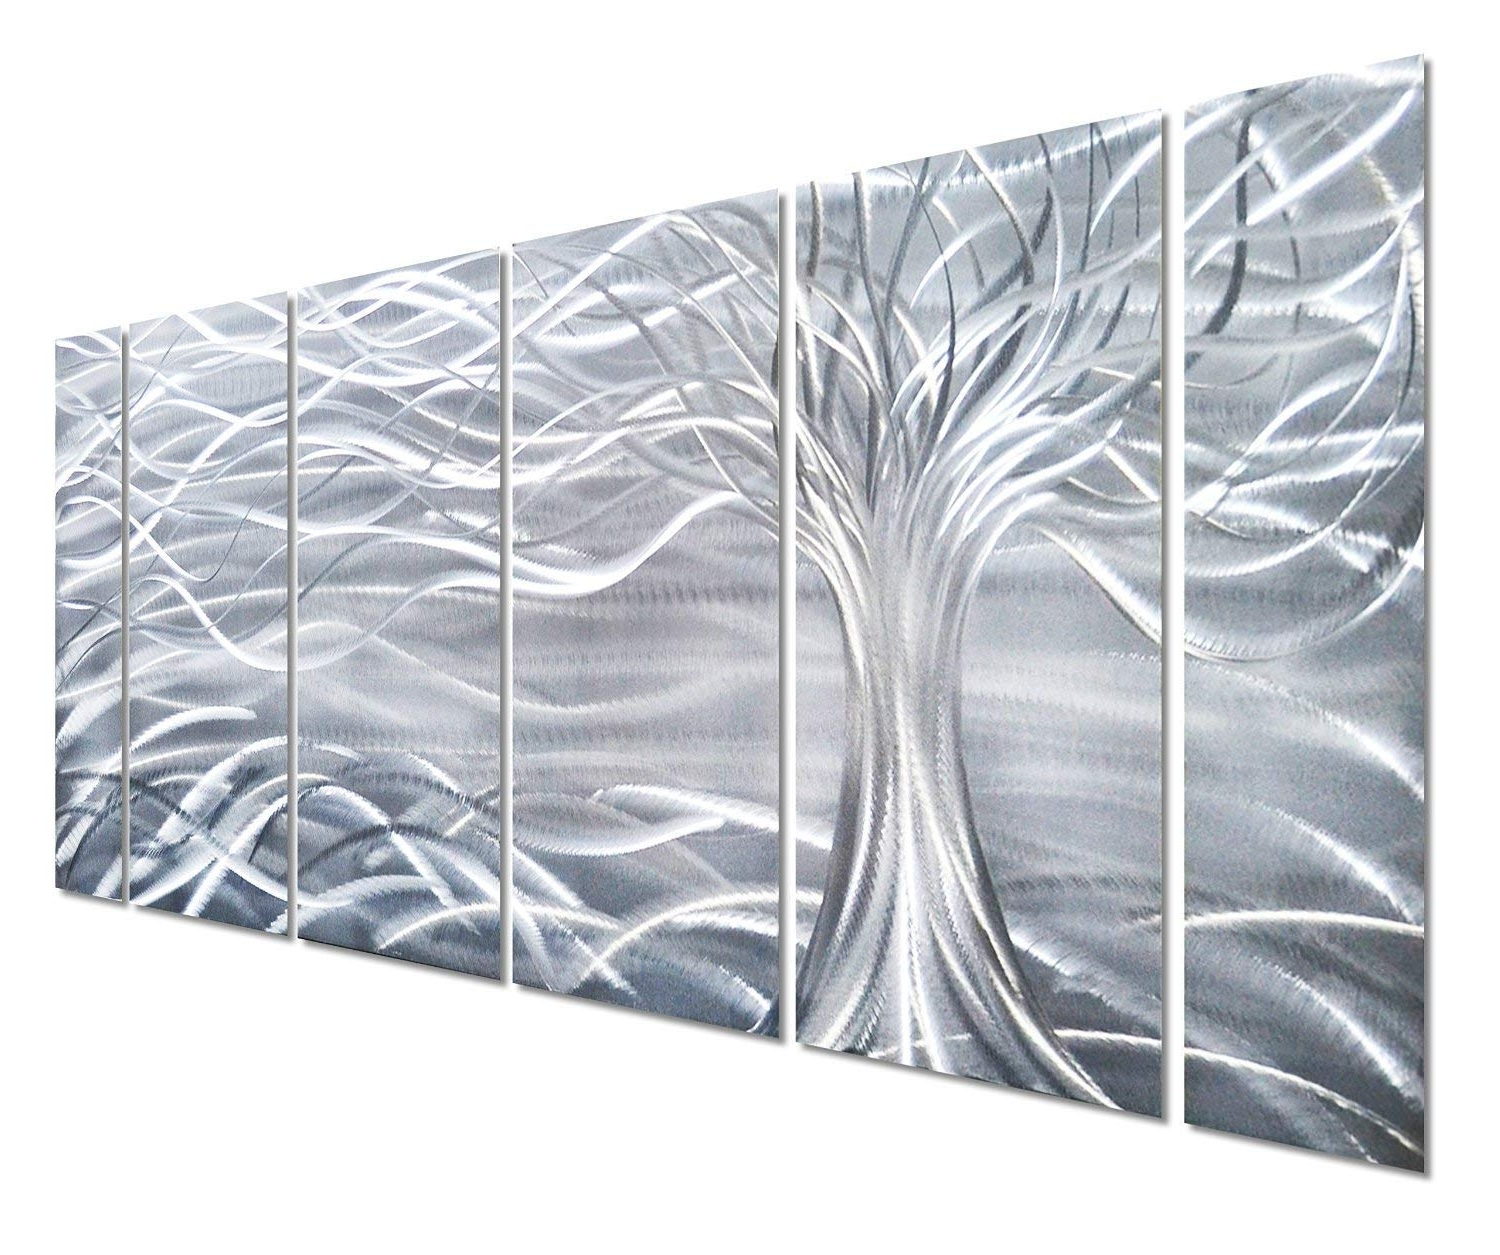 Most Popular Amazon: Pure Art Willow Tree Of Life Metal Wall Art, Abstract With Regard To 3D Metal Wall Art (View 6 of 15)